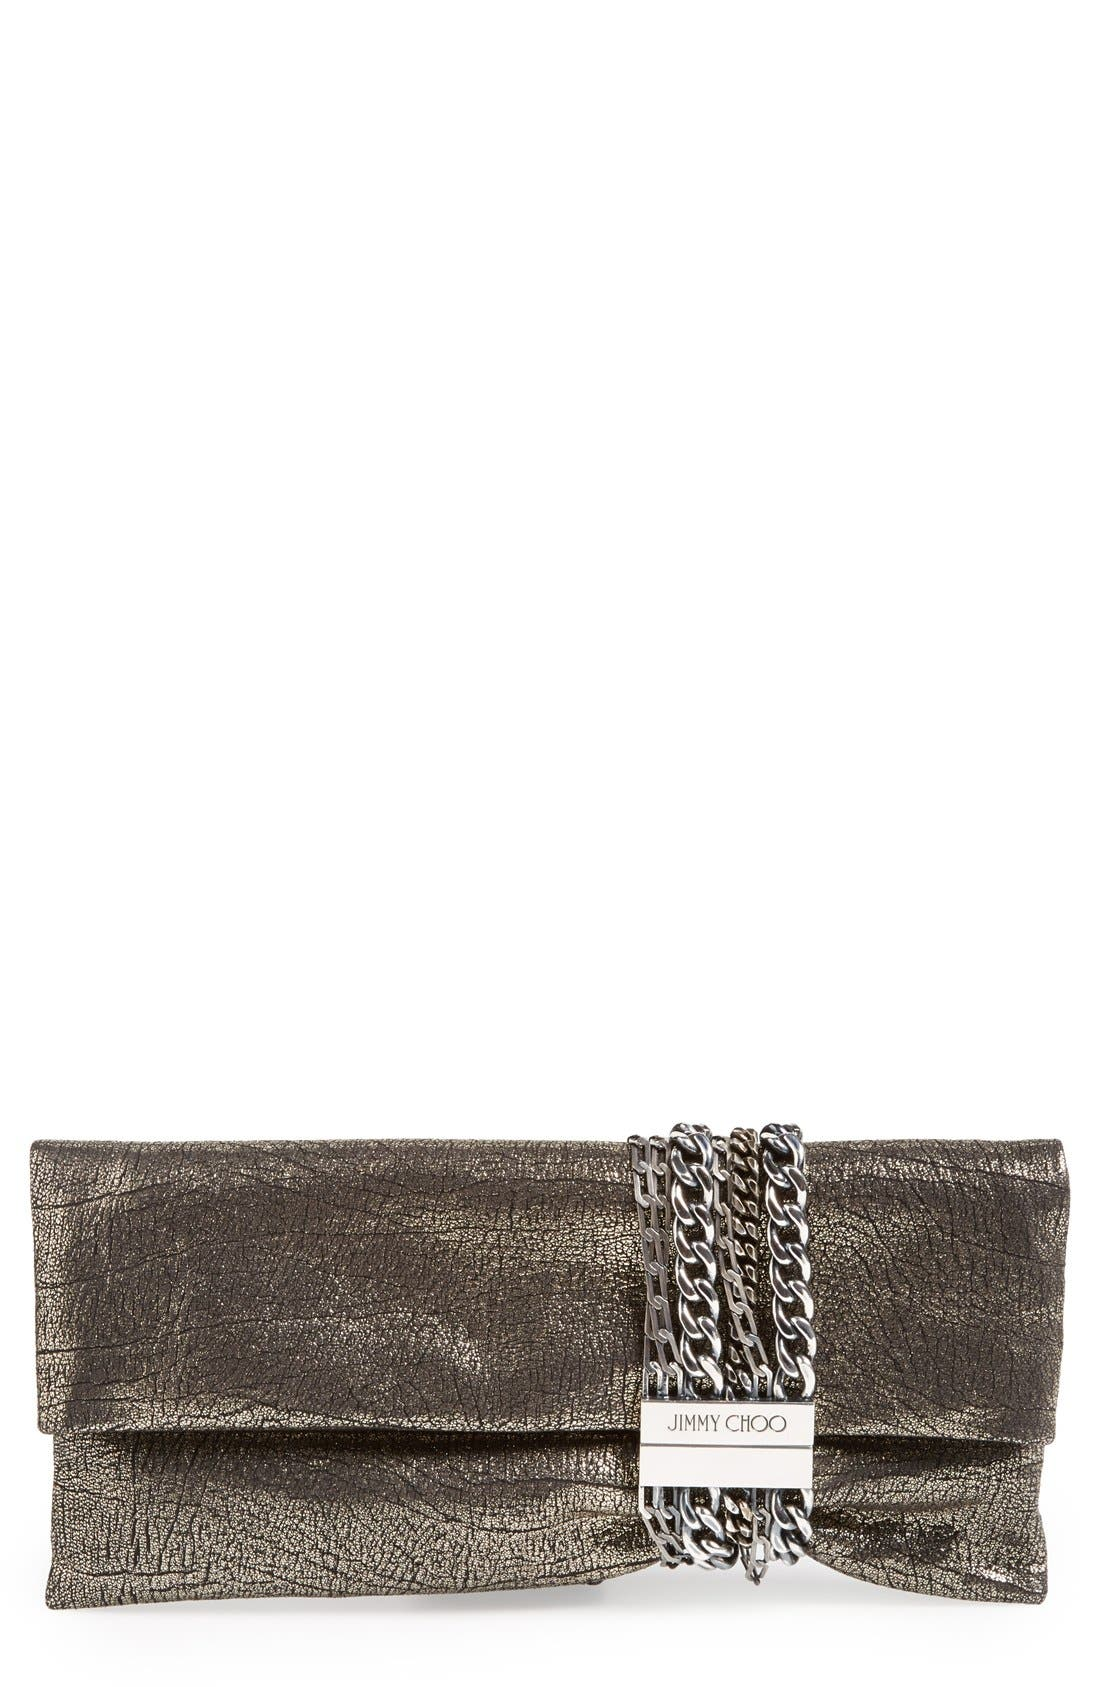 Alternate Image 1 Selected - Jimmy Choo 'Chandra' Leather Clutch